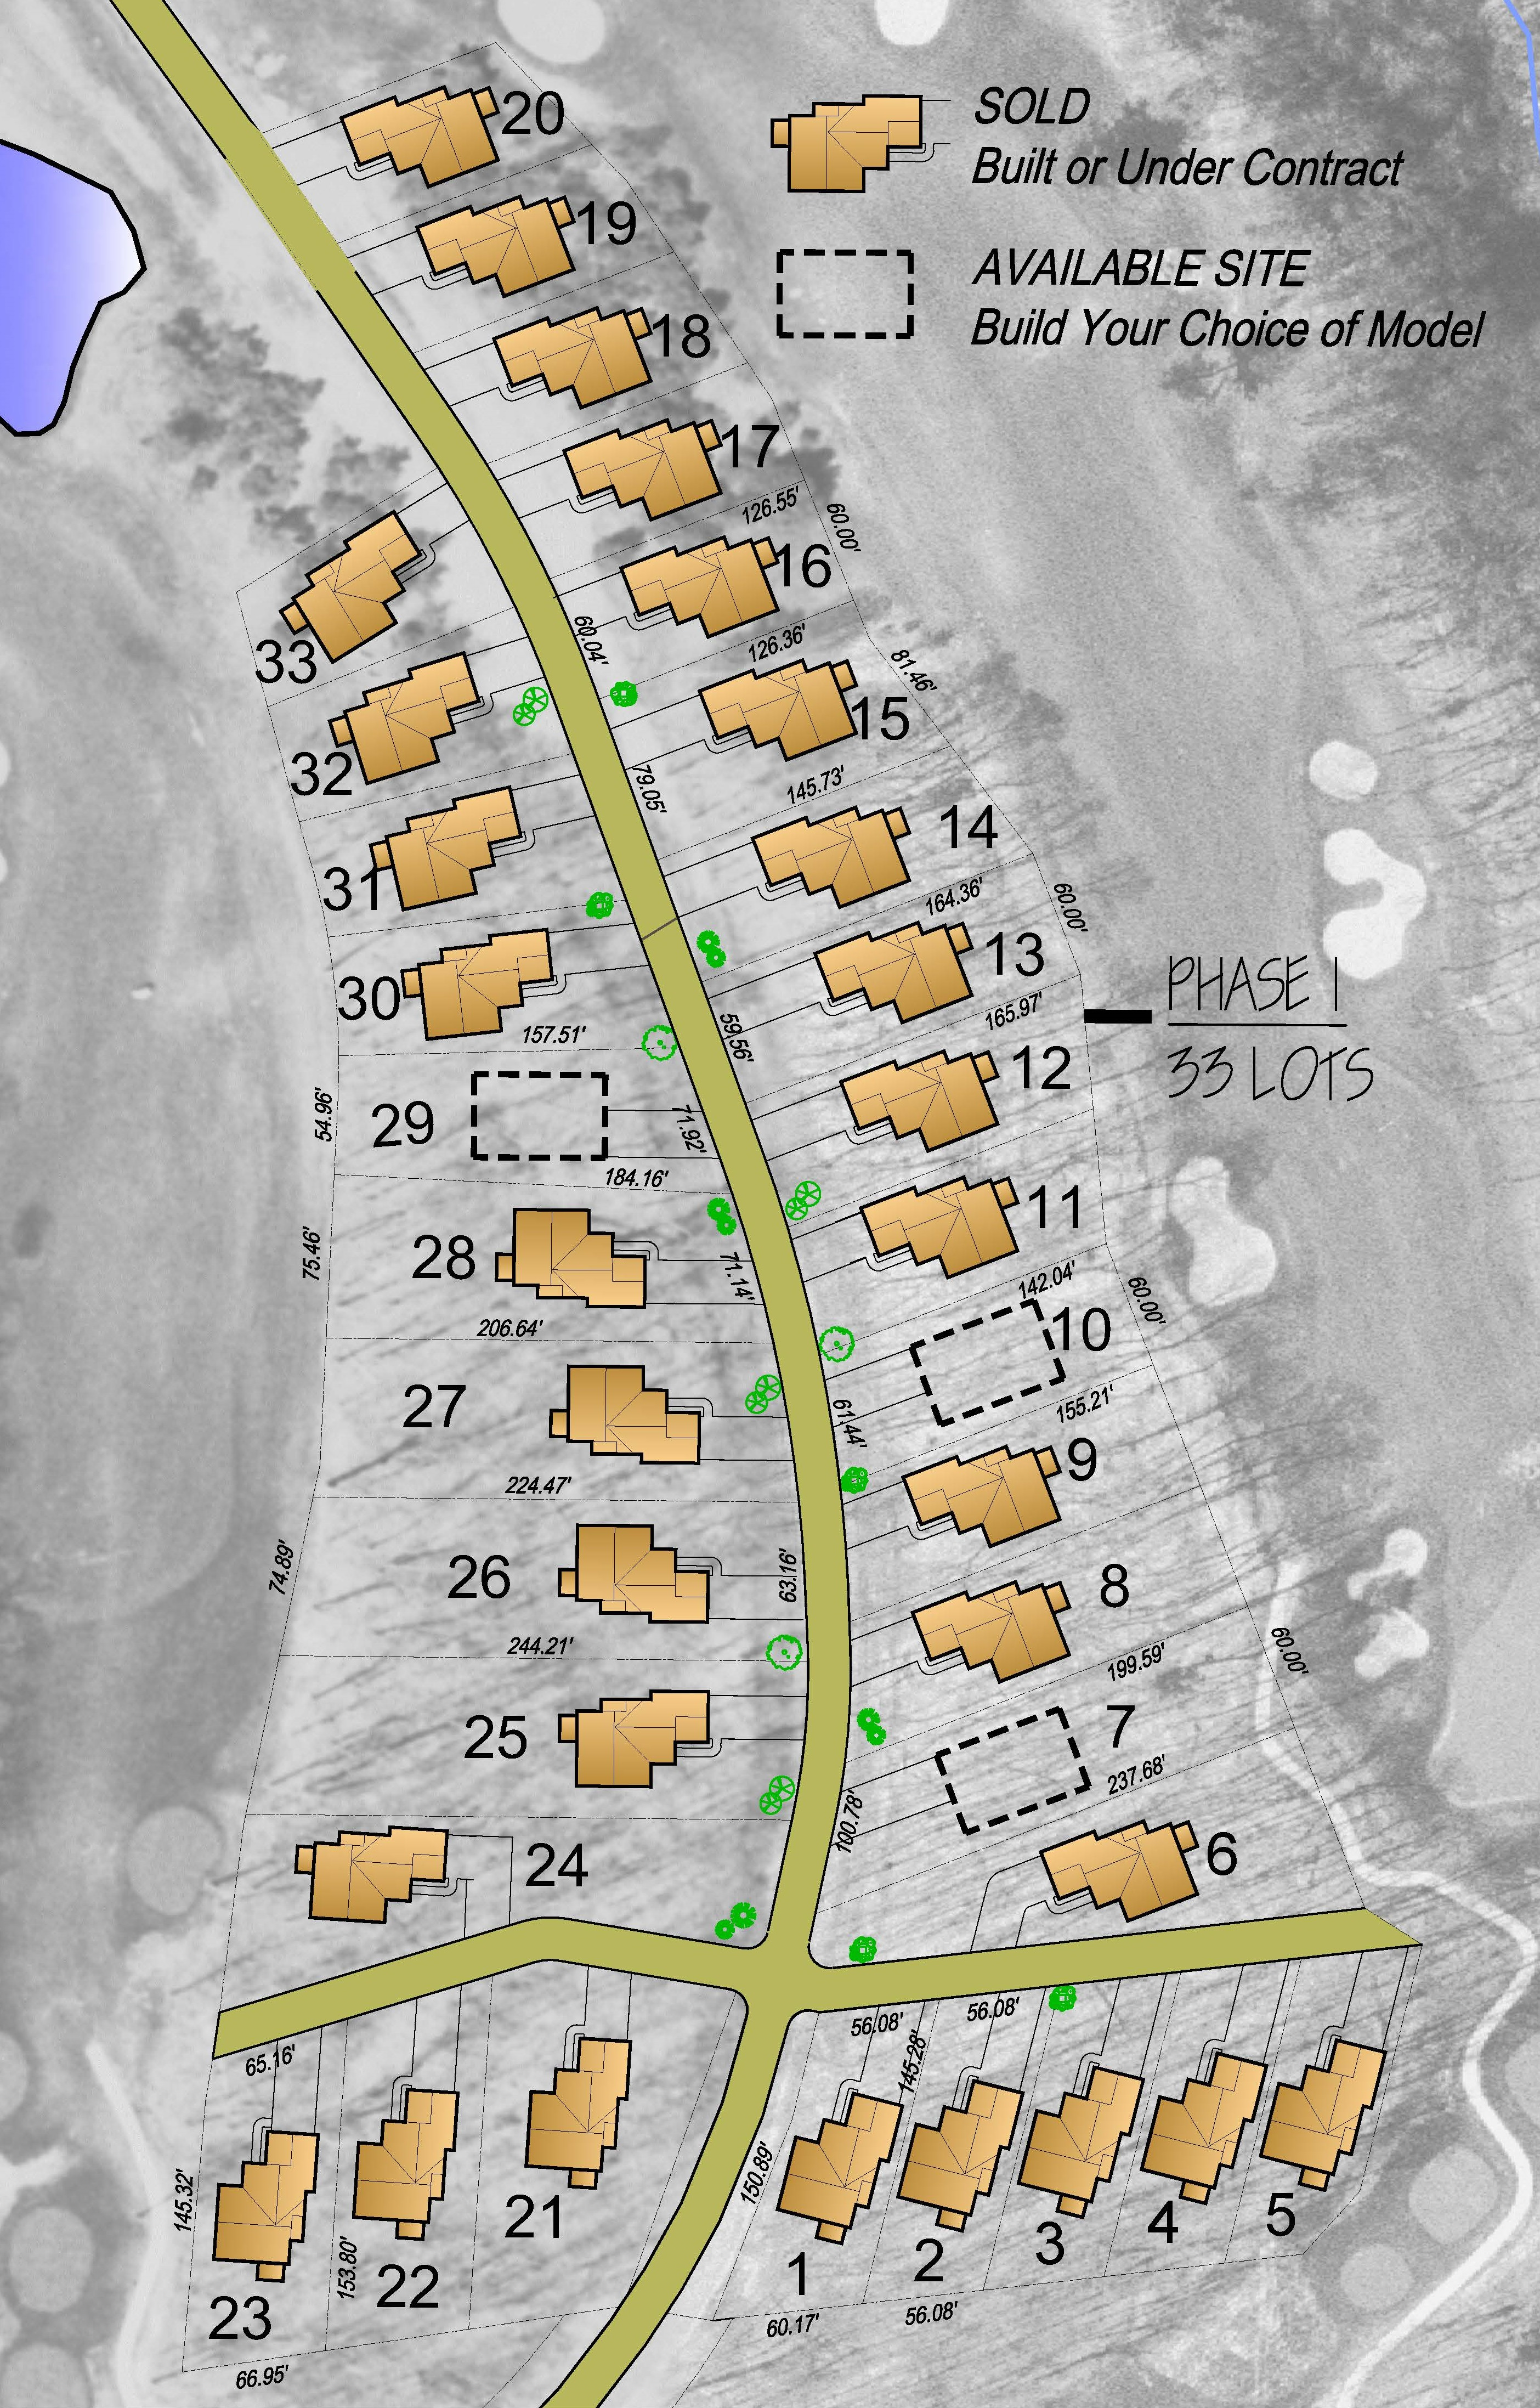 Site Plan-SOLD-May 28 2019 - image